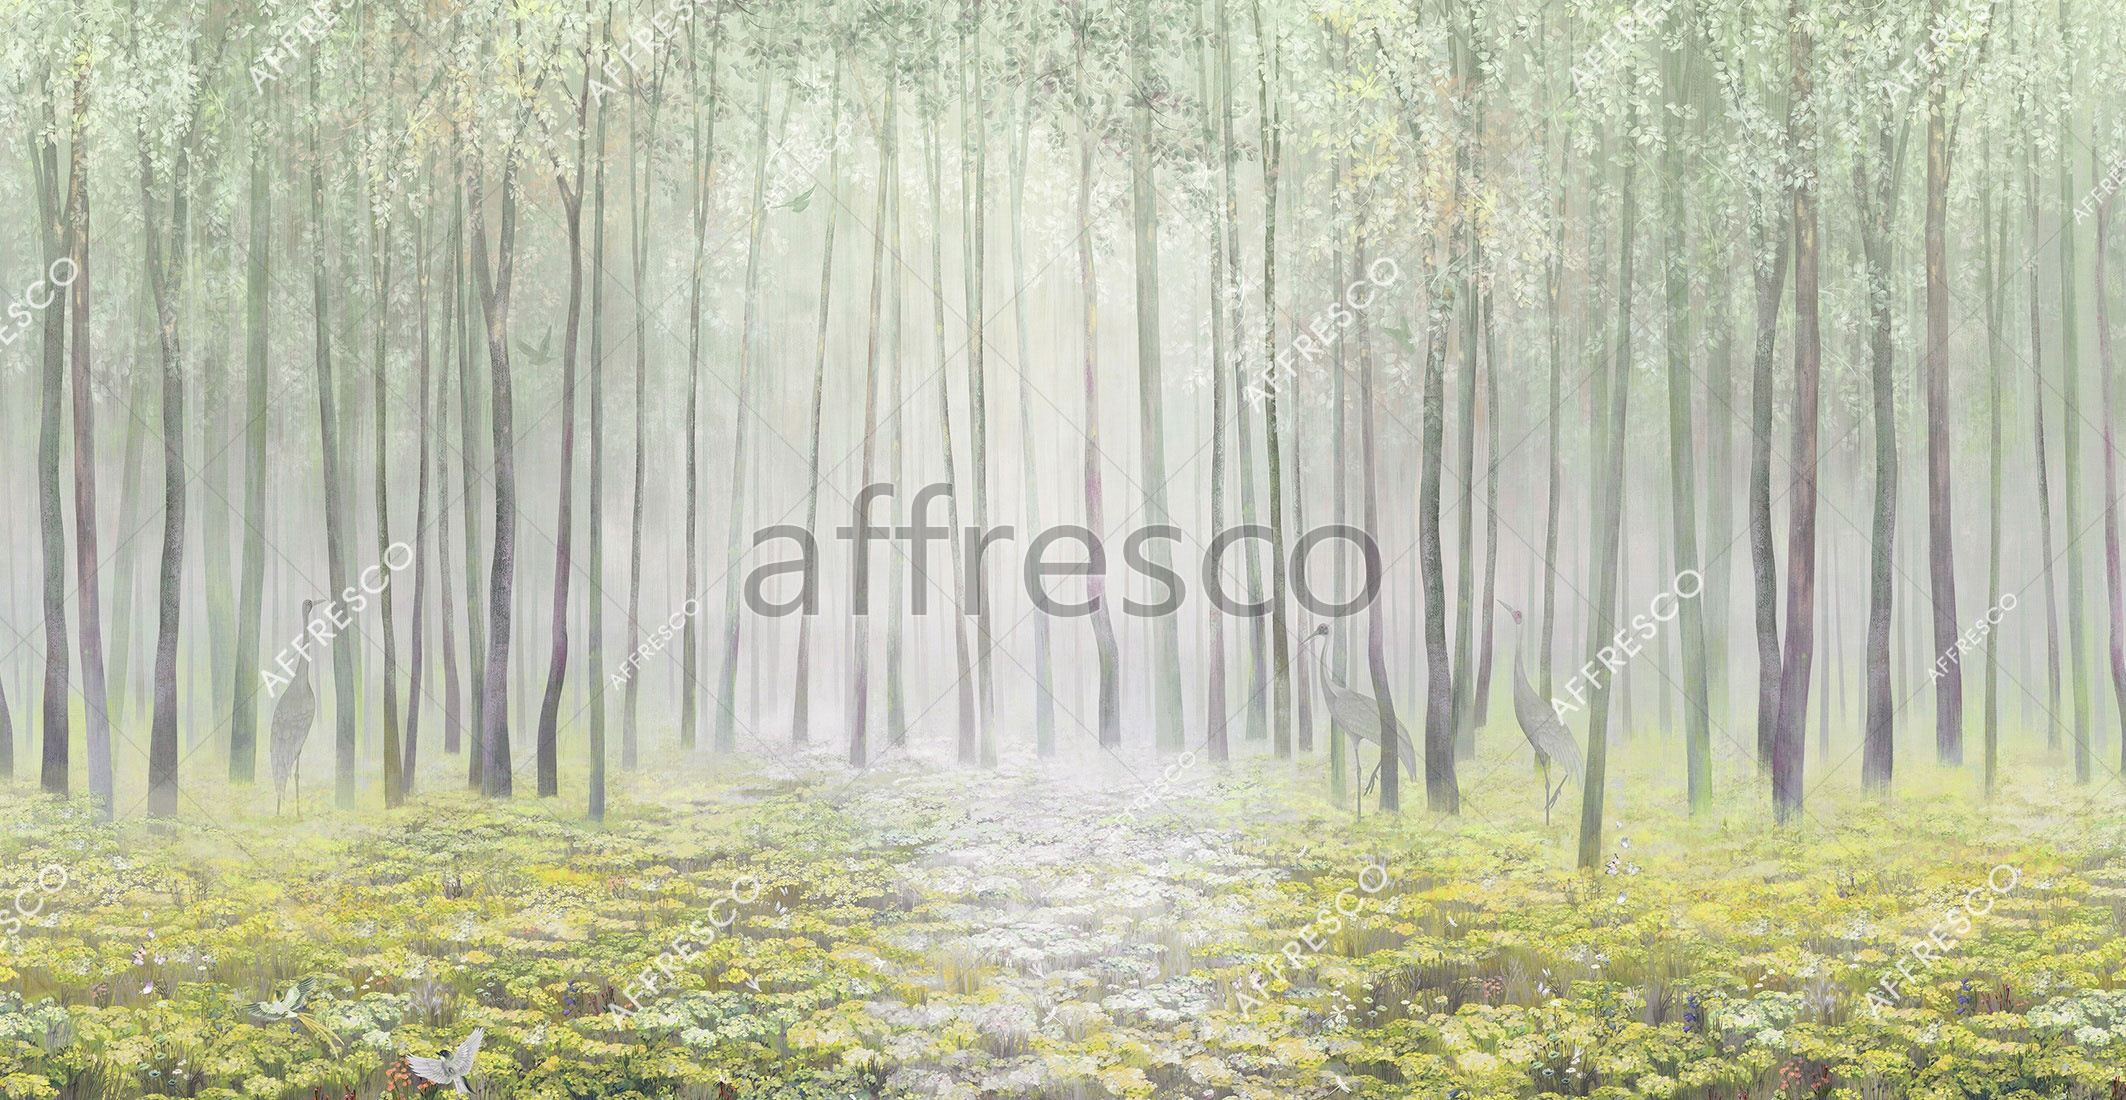 ID136007 | Forest |  | Affresco Factory